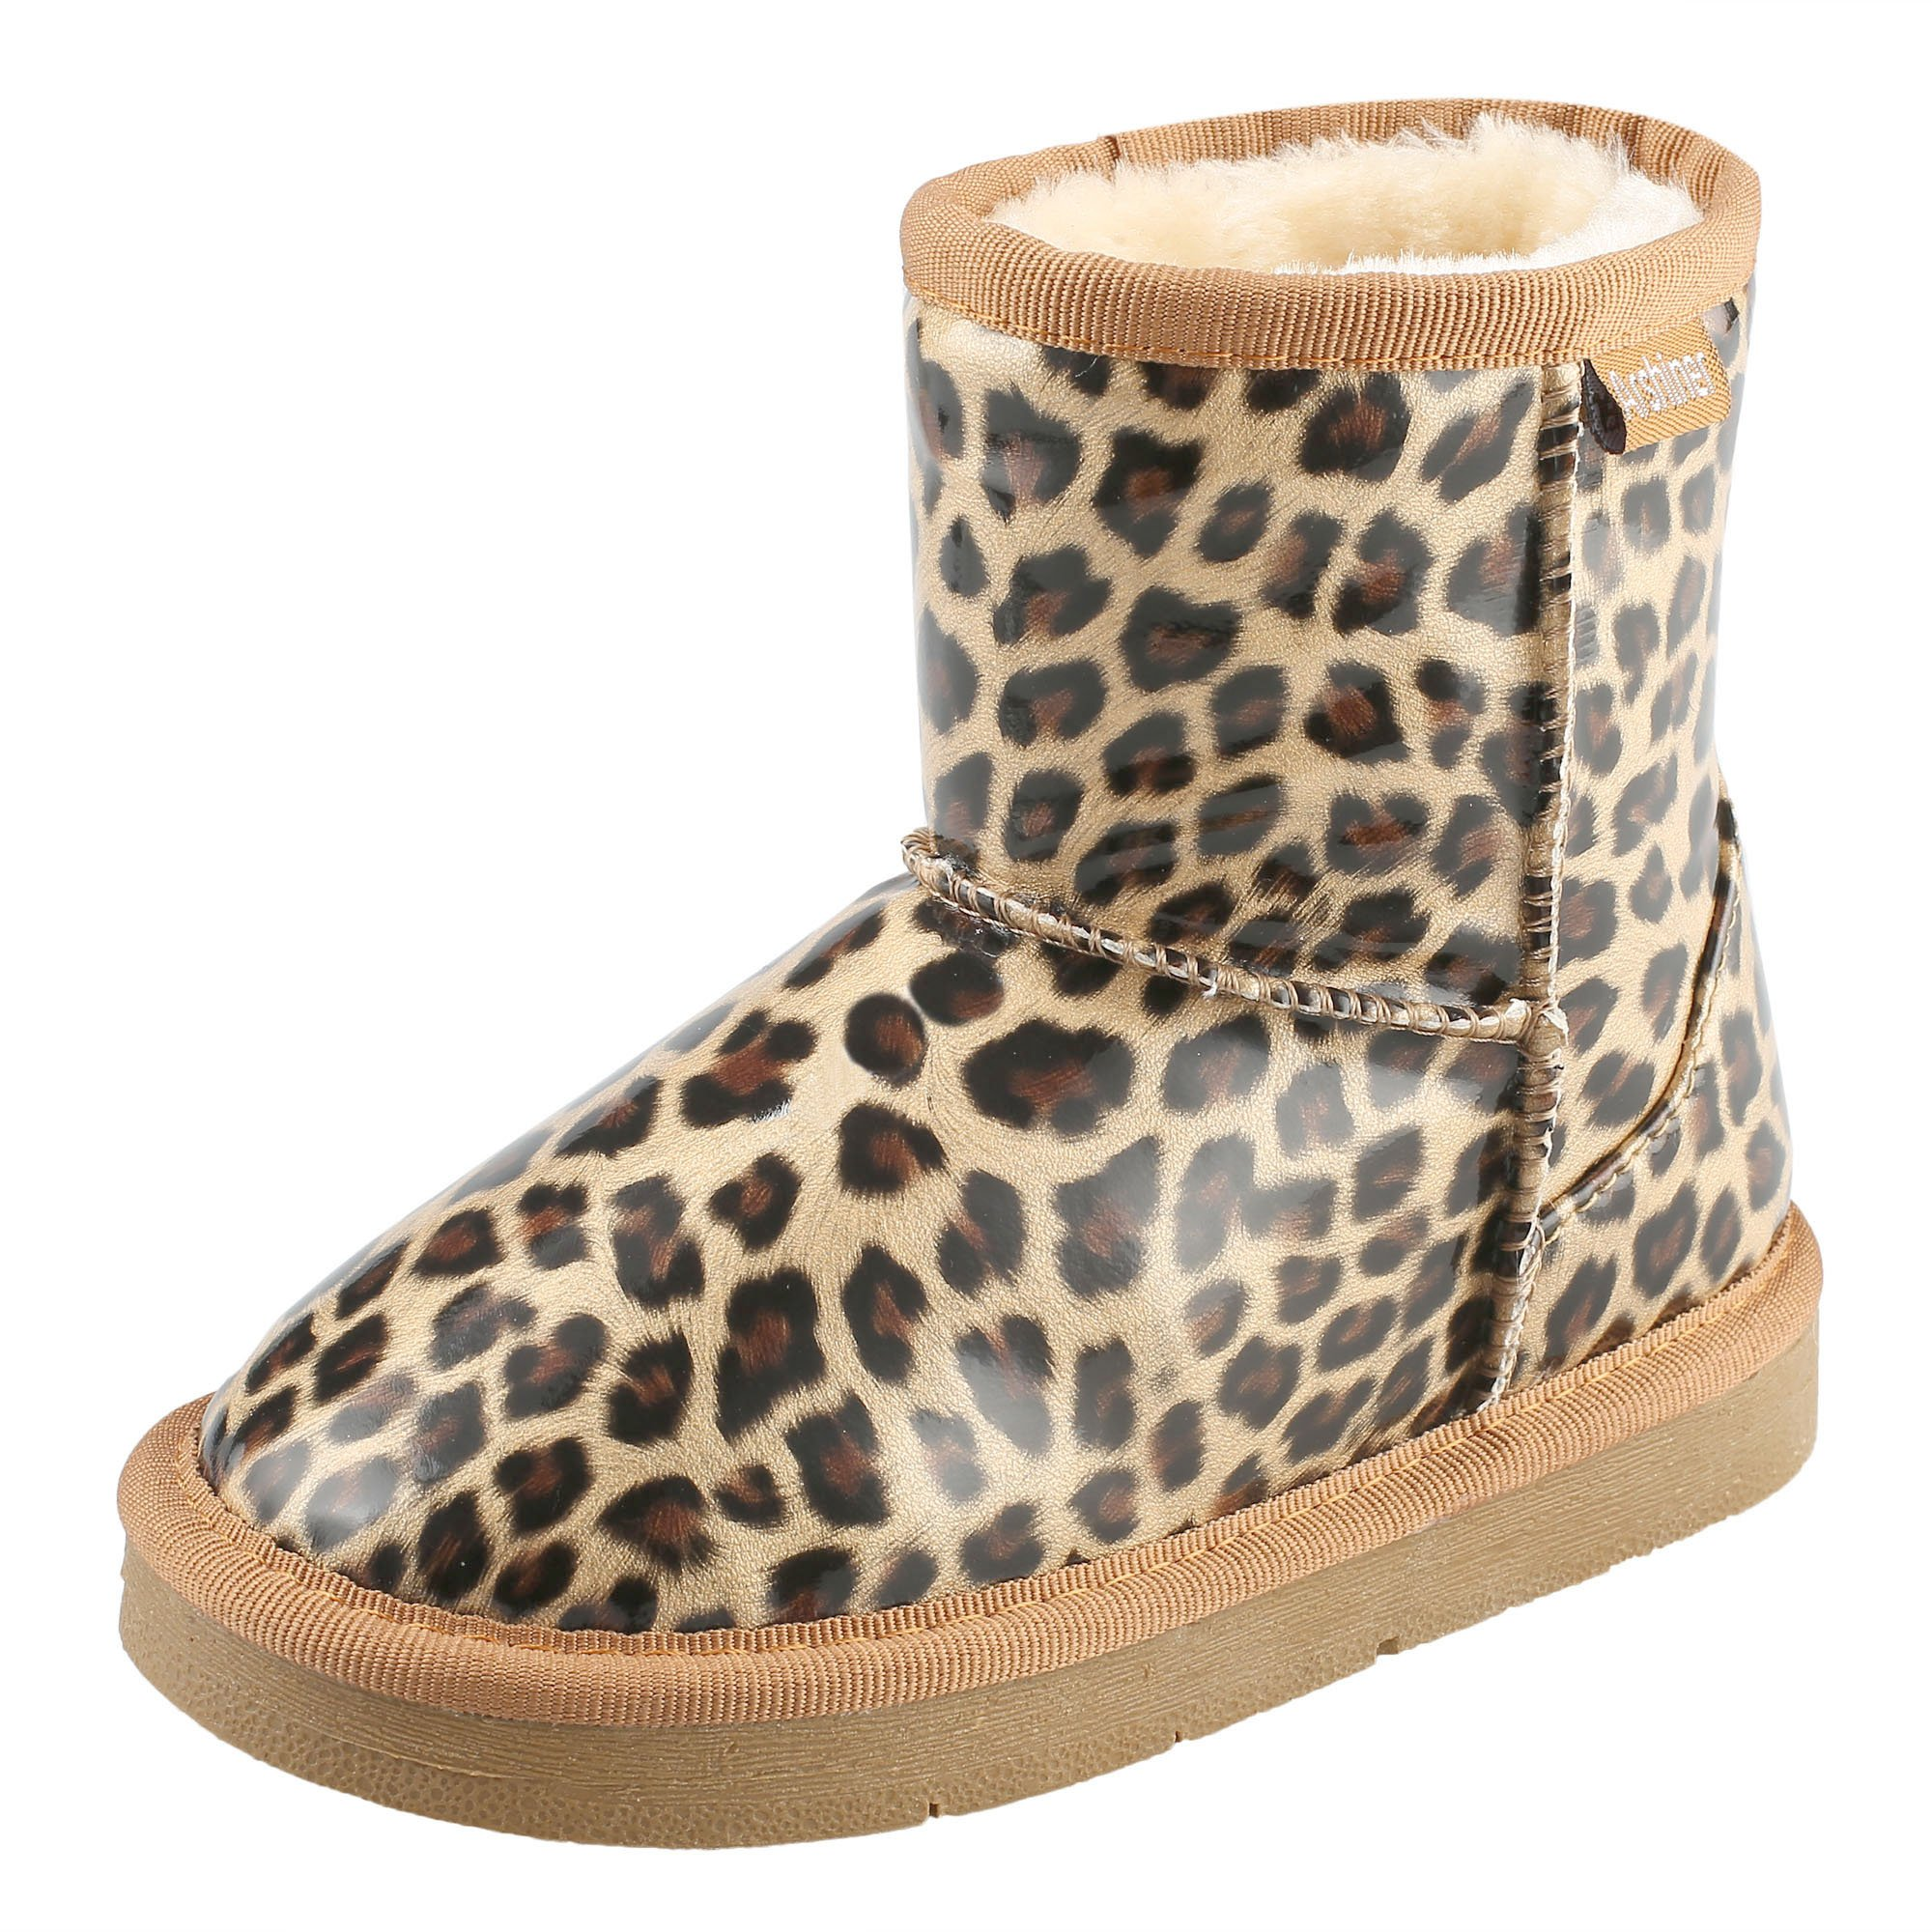 Arshiner Girls' Boys Warm Winter Fur Shoes Snow Boots, Leopard 1-1.5T